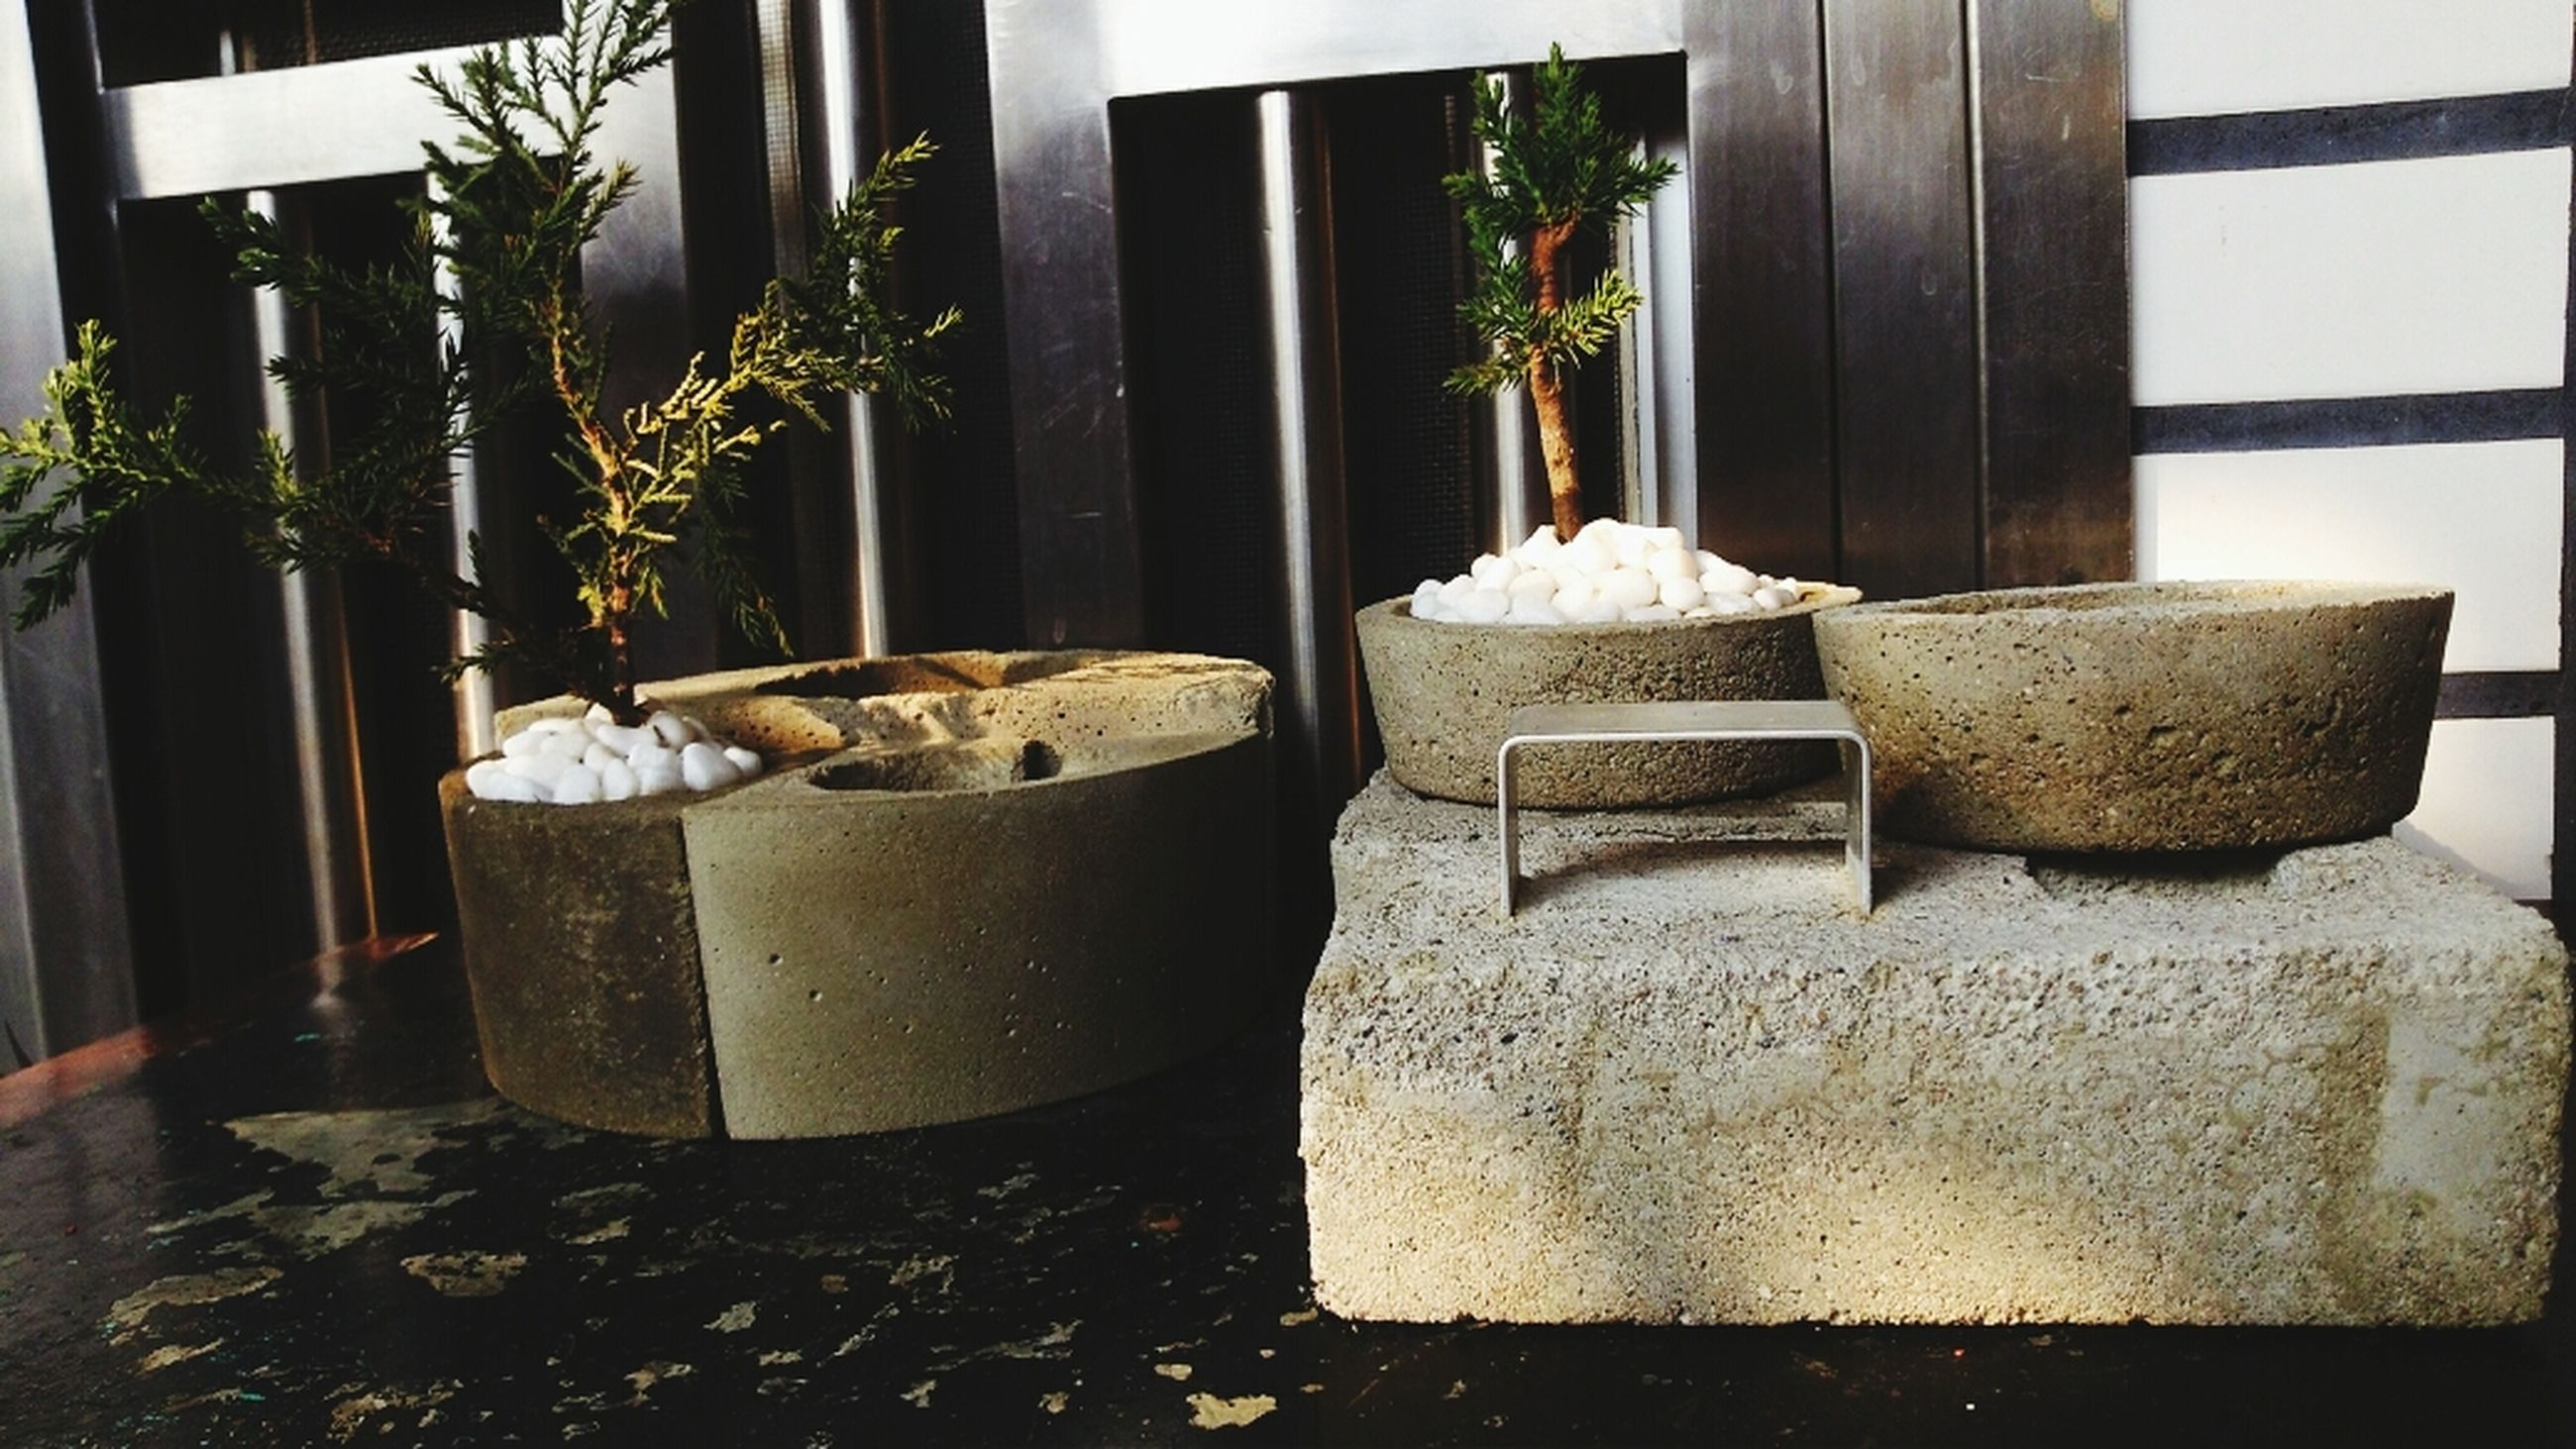 potted plant, plant, built structure, growth, architecture, house, indoors, window, wall - building feature, front or back yard, day, no people, chair, wood - material, building exterior, flower pot, sunlight, old, wall